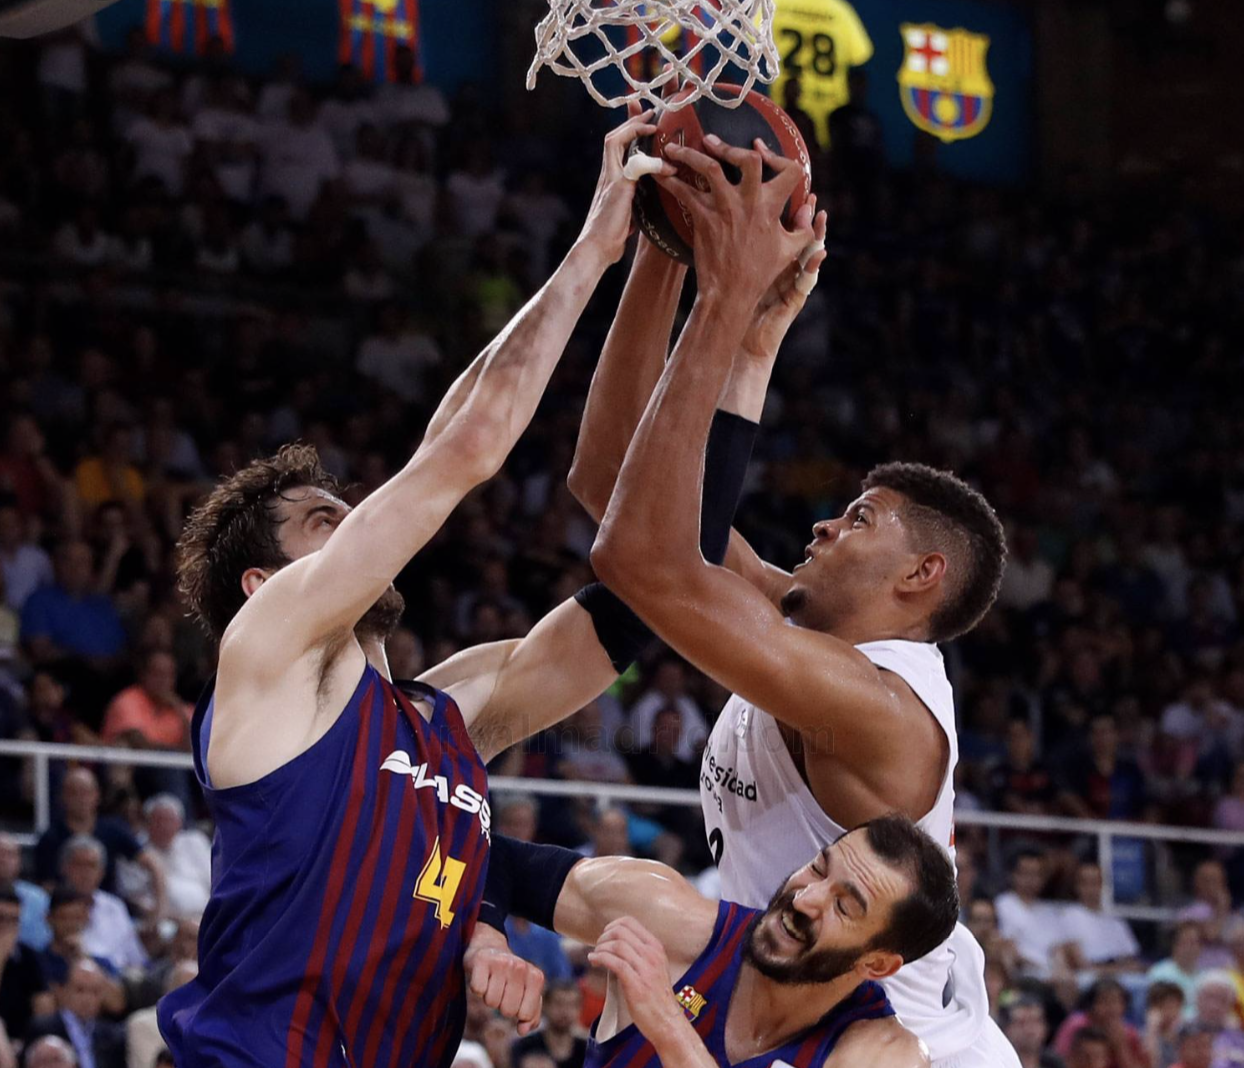 Tavares Tomic Ribas Real Madrid Barcelona ACB final